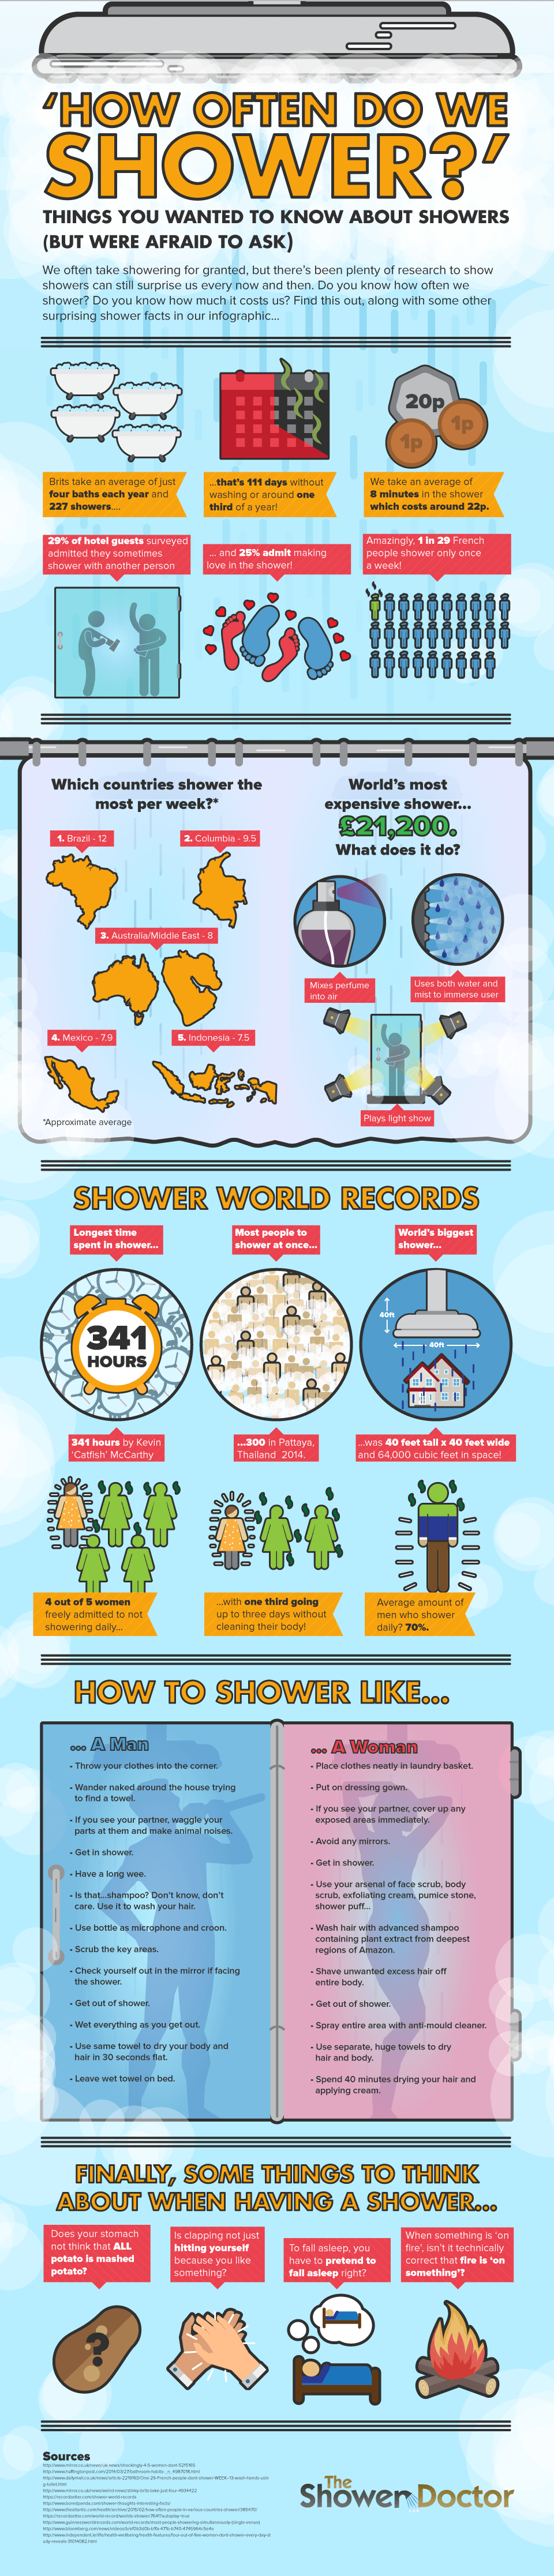 Shower-Doctor-Weird-Showers-infographic